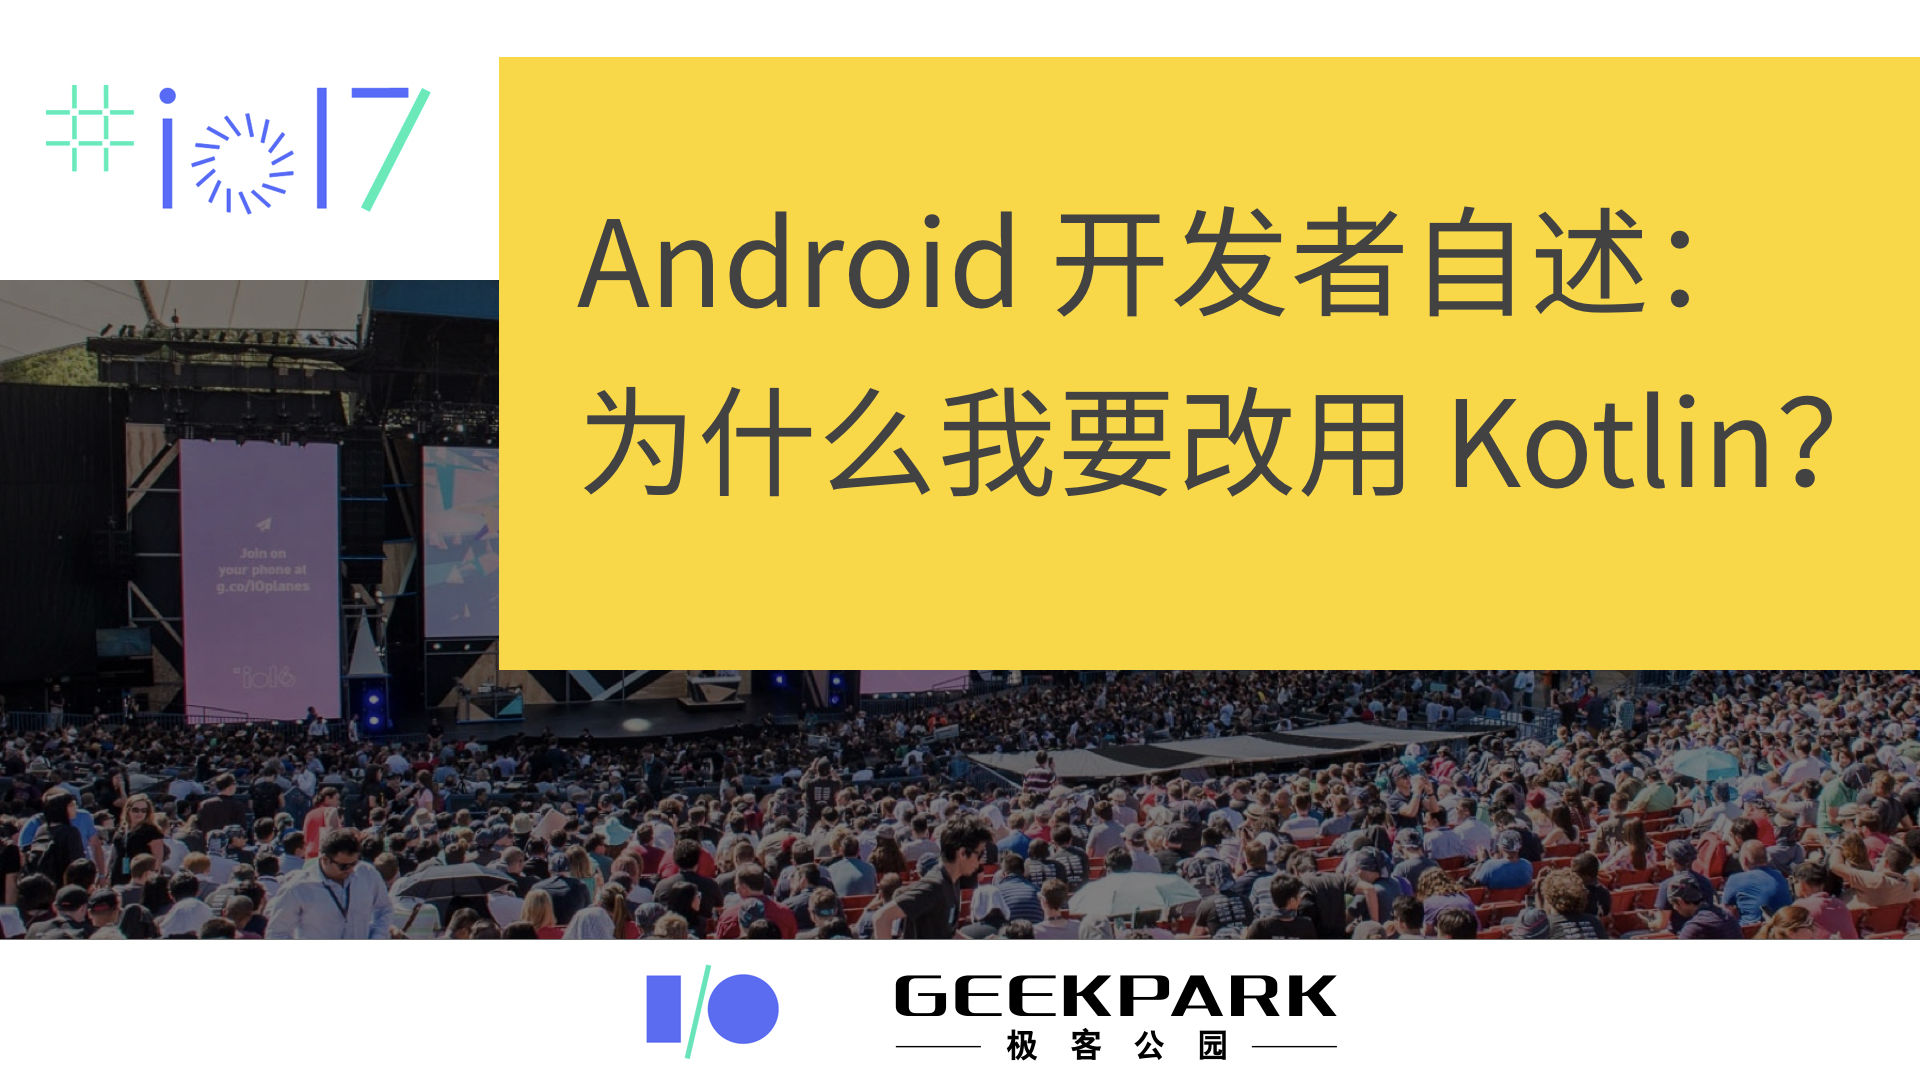 Android 开发者自述:为什么我要改用 Kotlin?